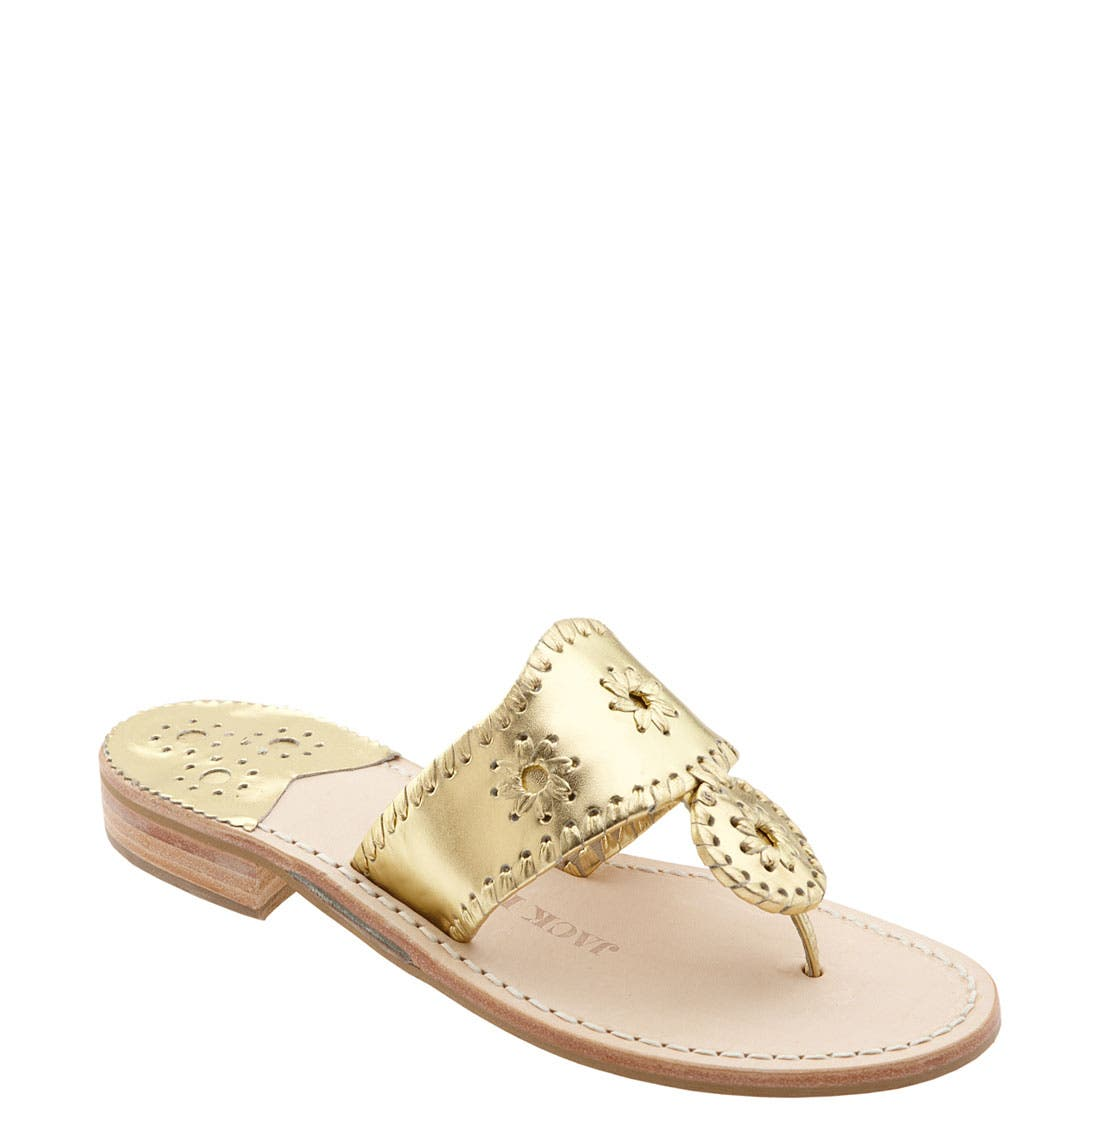 Alternate Image 1 Selected - Jack Rogers Whipstitched Flip Flop (Women)